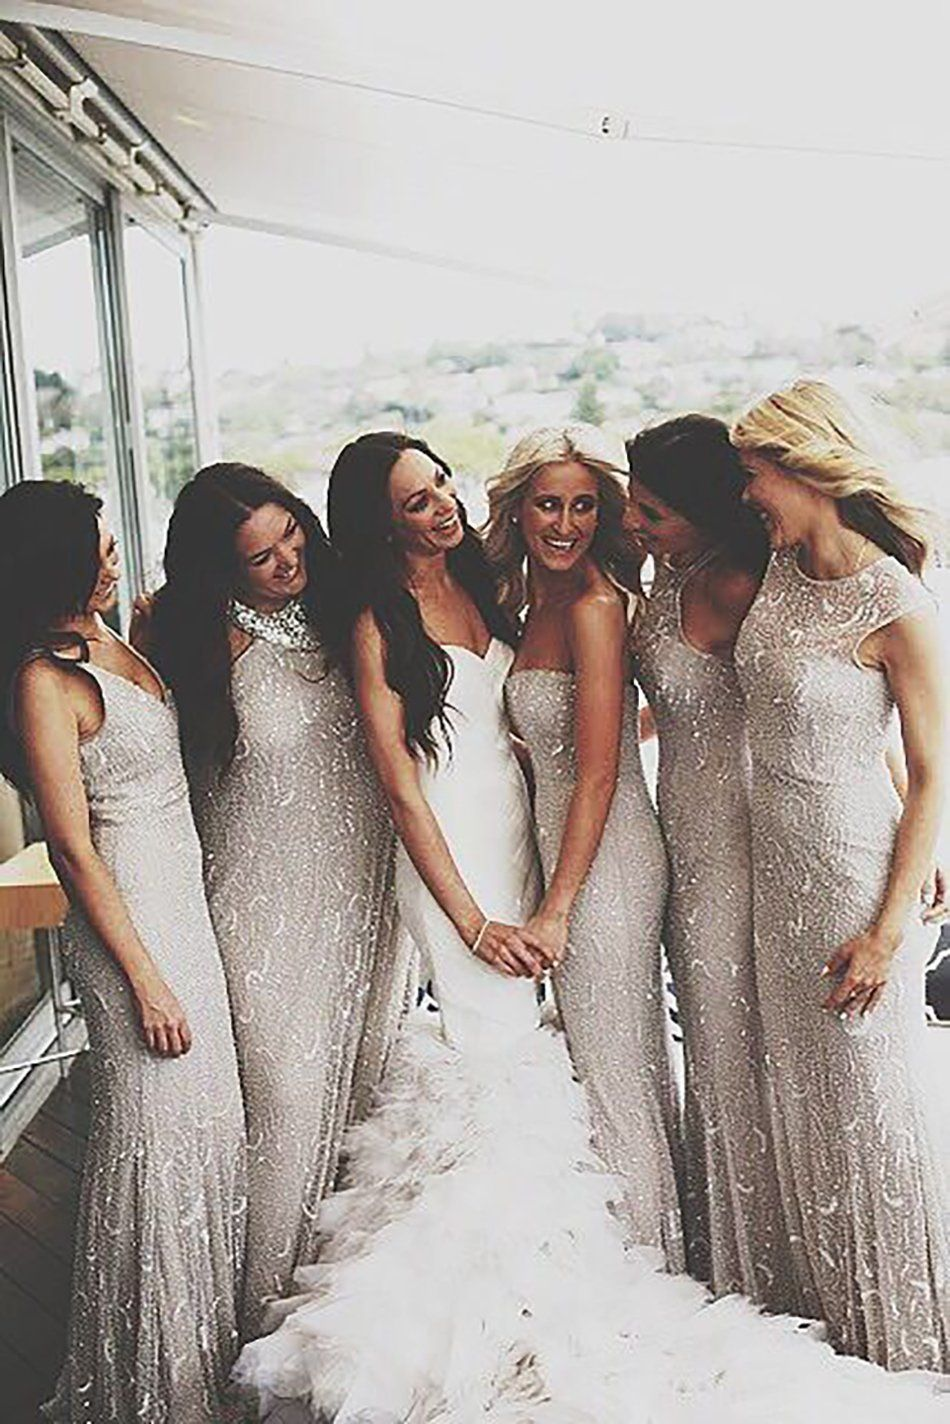 Metallic wedding dress  Bride and bridesmaids wearing silver sequined dresses  Someday